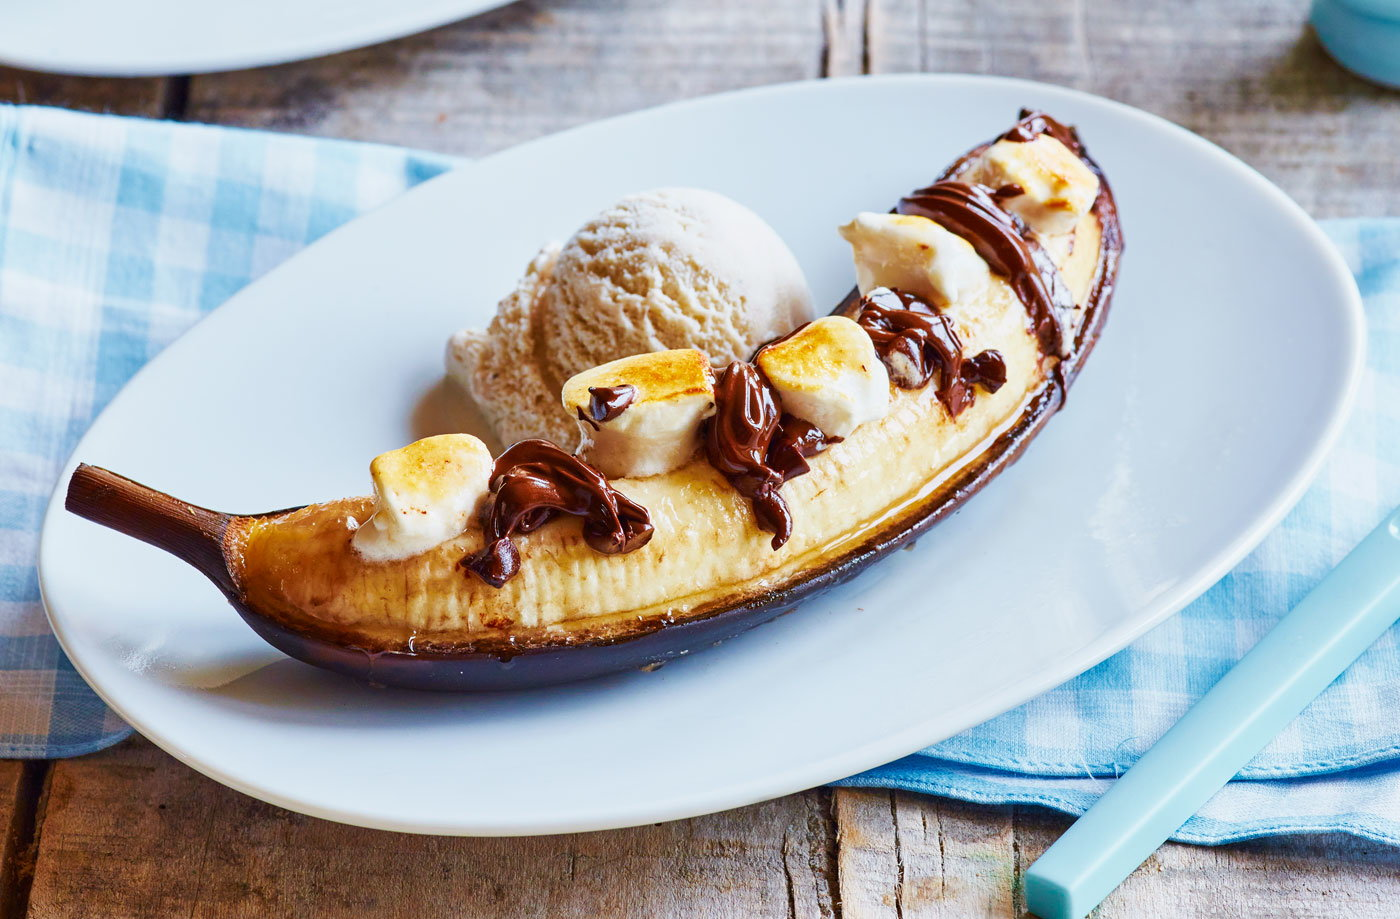 Bananas stuffed with chocolate and marshmallow recipe